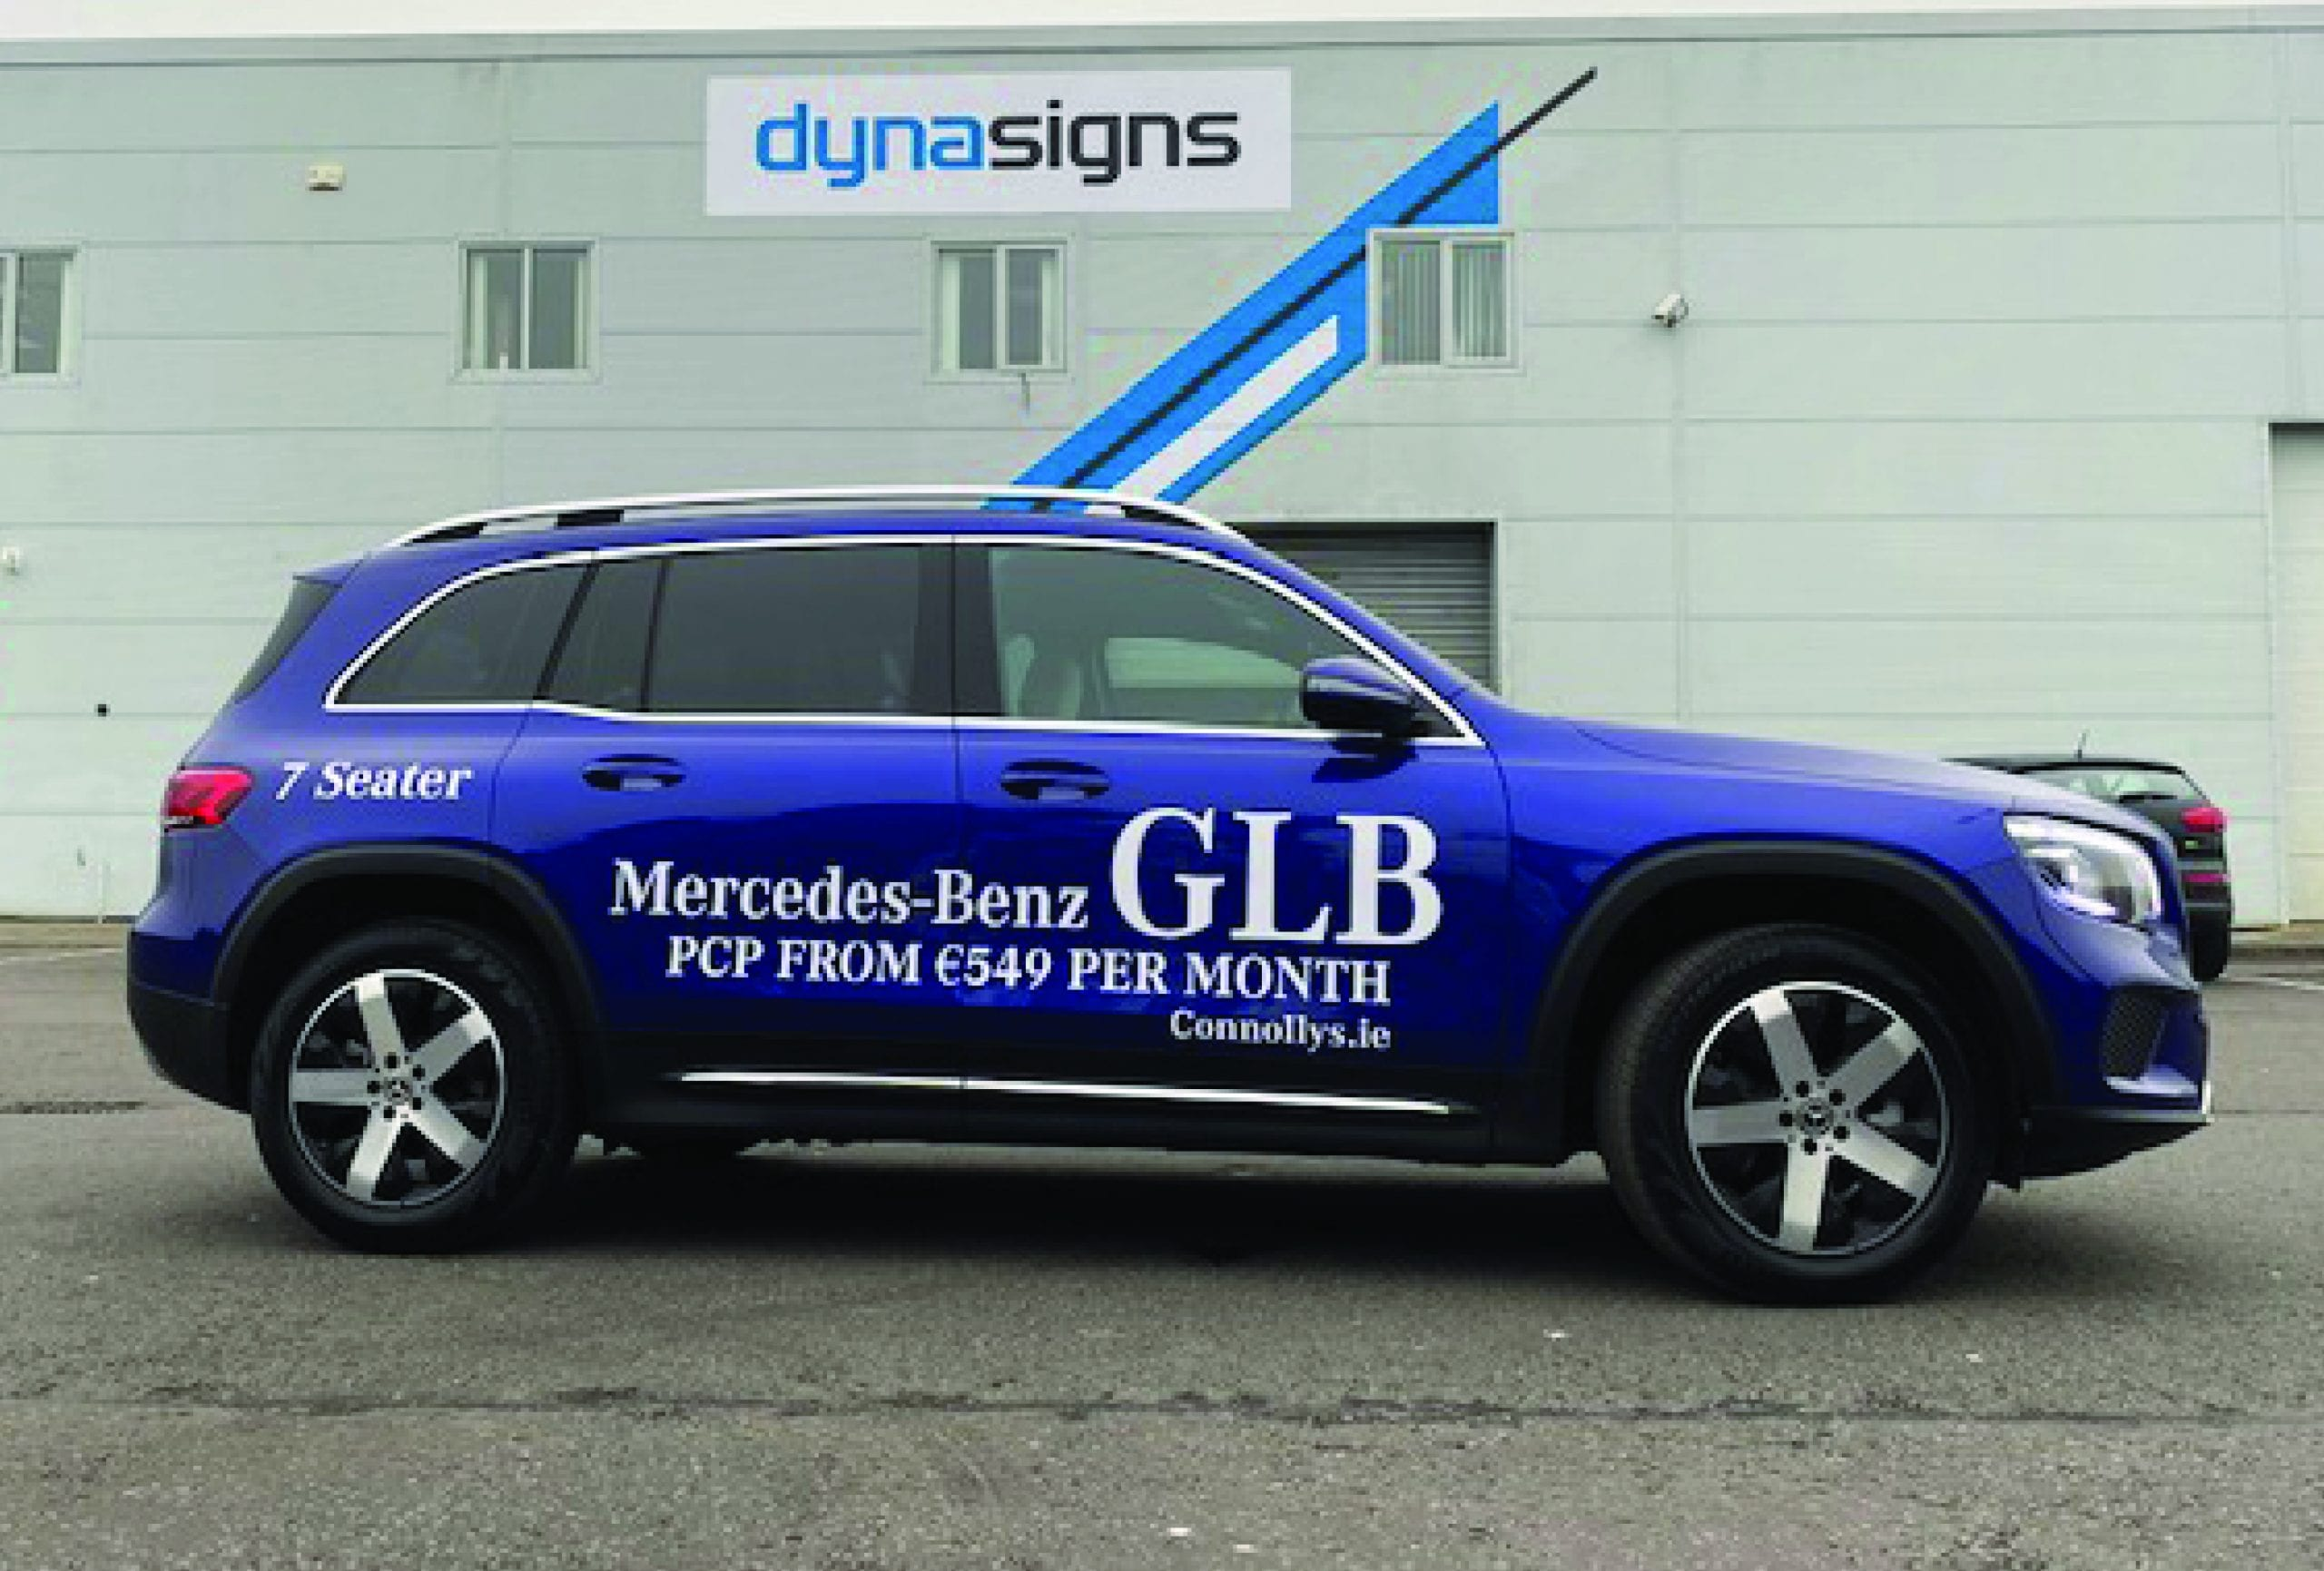 Vinyl Graphics to a Mercedes-Benz GLB